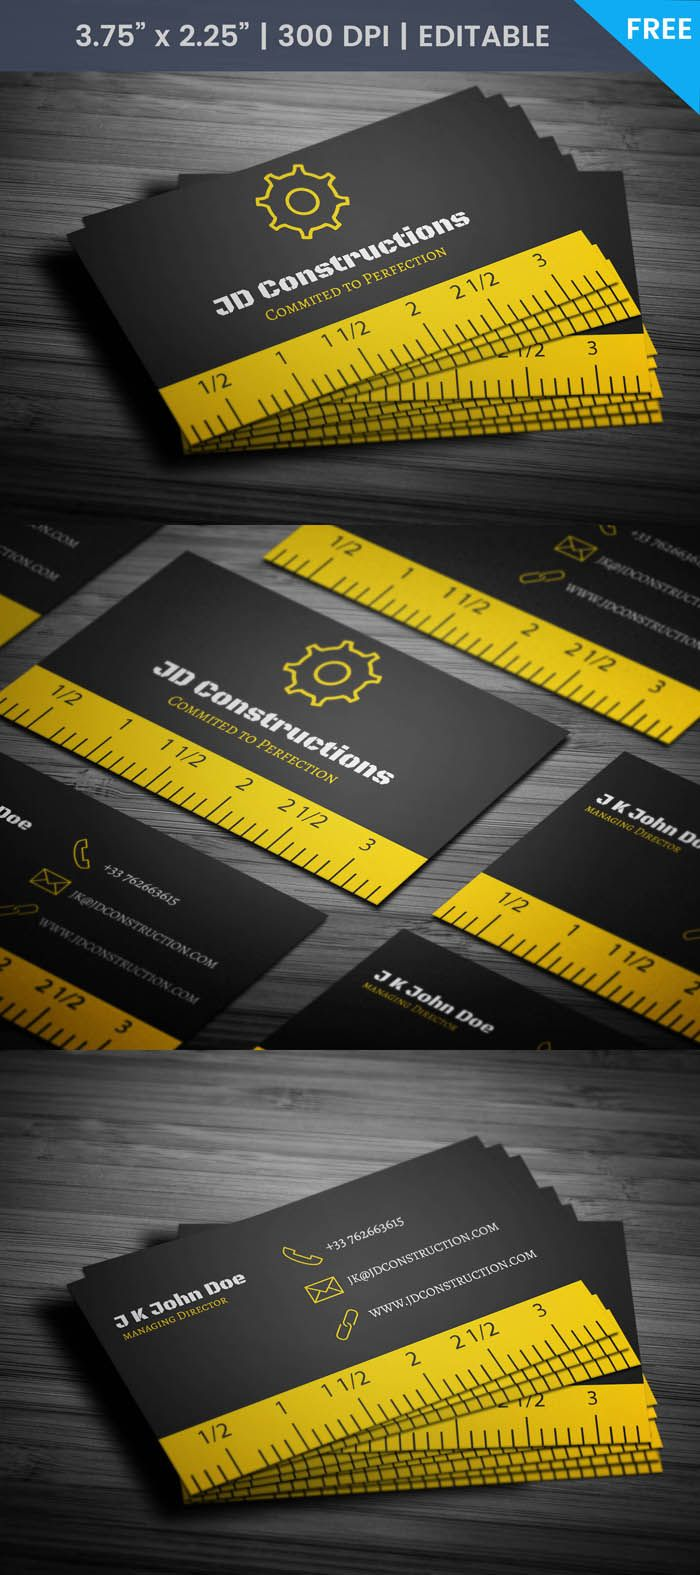 Background On Scale Construction Card Construction Construction Business Cards Printing Business Cards Business Card Template Design